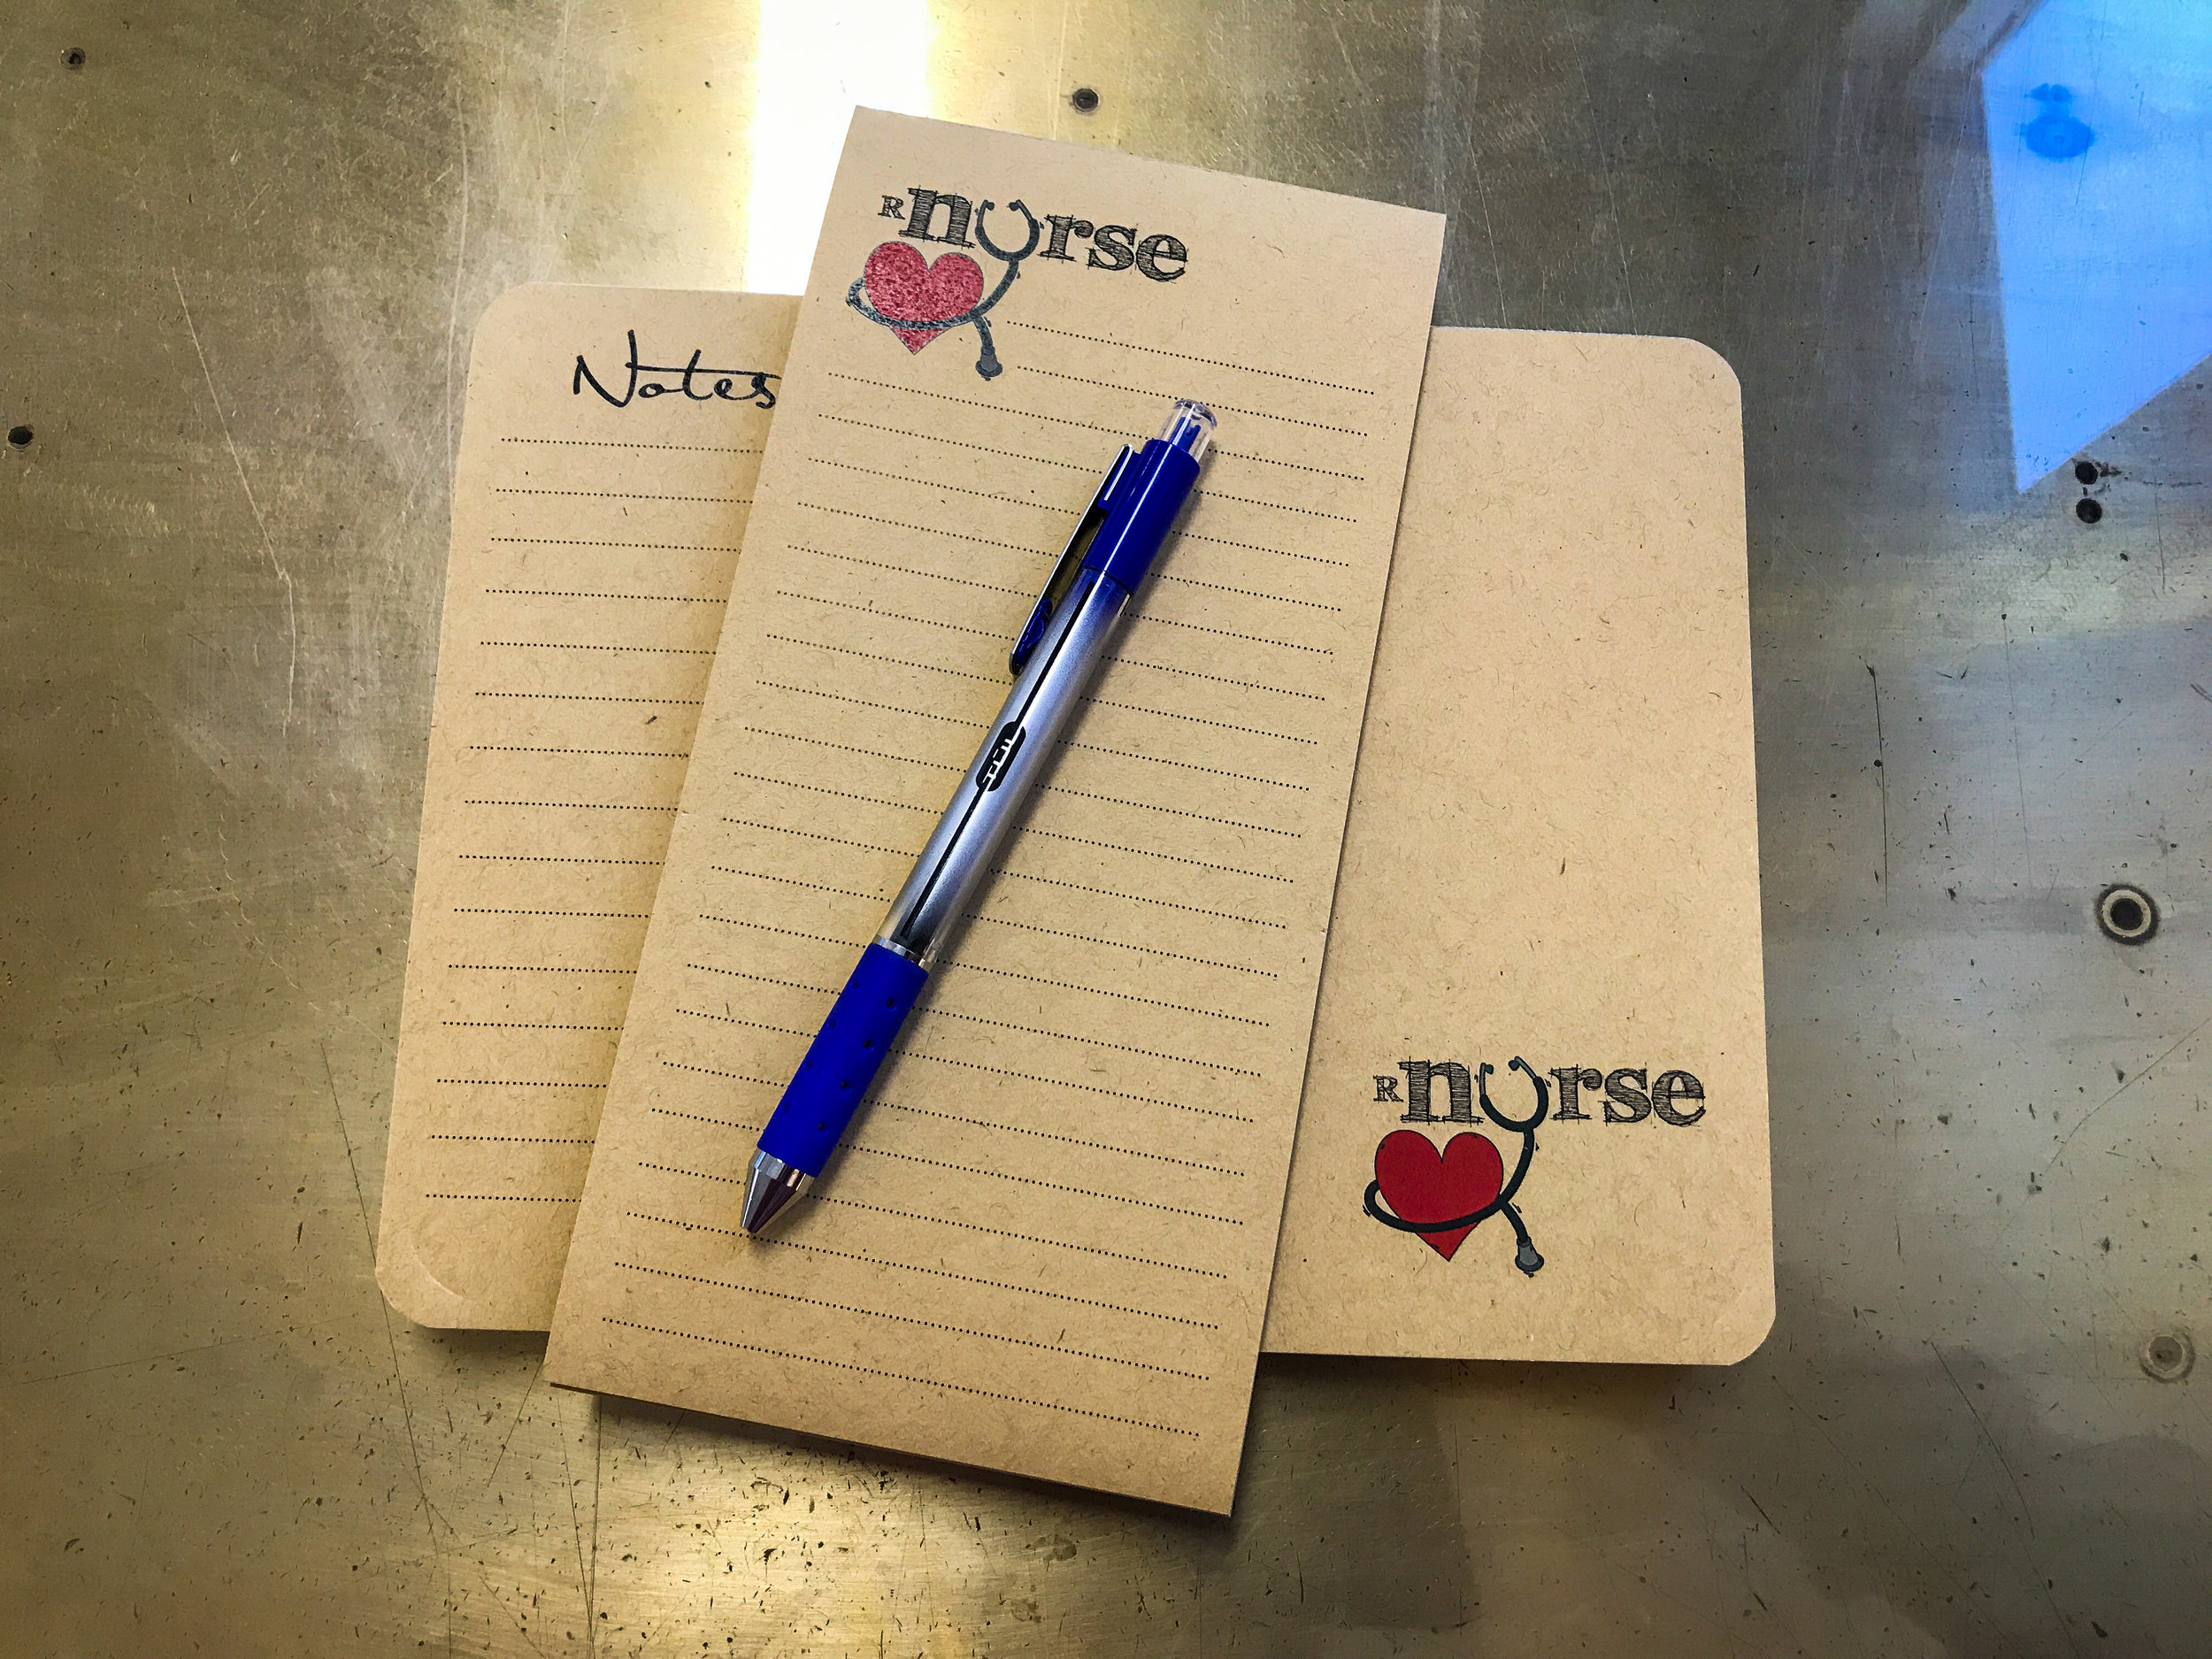 Flip-It notepad sets - Super handy with a weekly planner on the flip side to keep you on track all week. As an added bonus is the tall and skinny comes with the flip it!